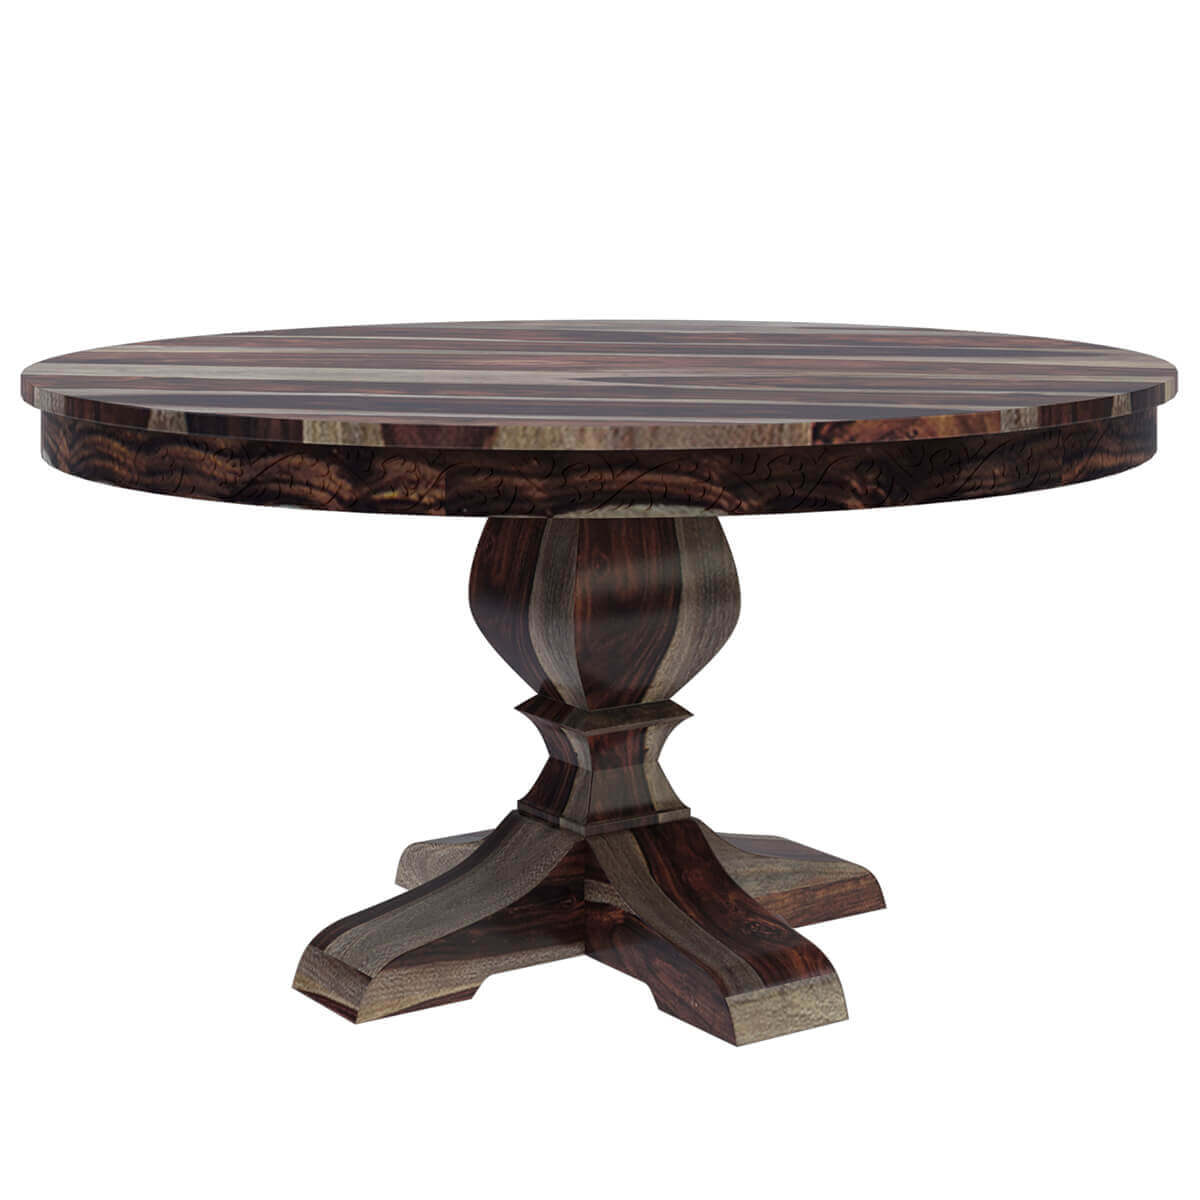 hosford handcrafted solid wood 60 round pedestal dining table. Black Bedroom Furniture Sets. Home Design Ideas